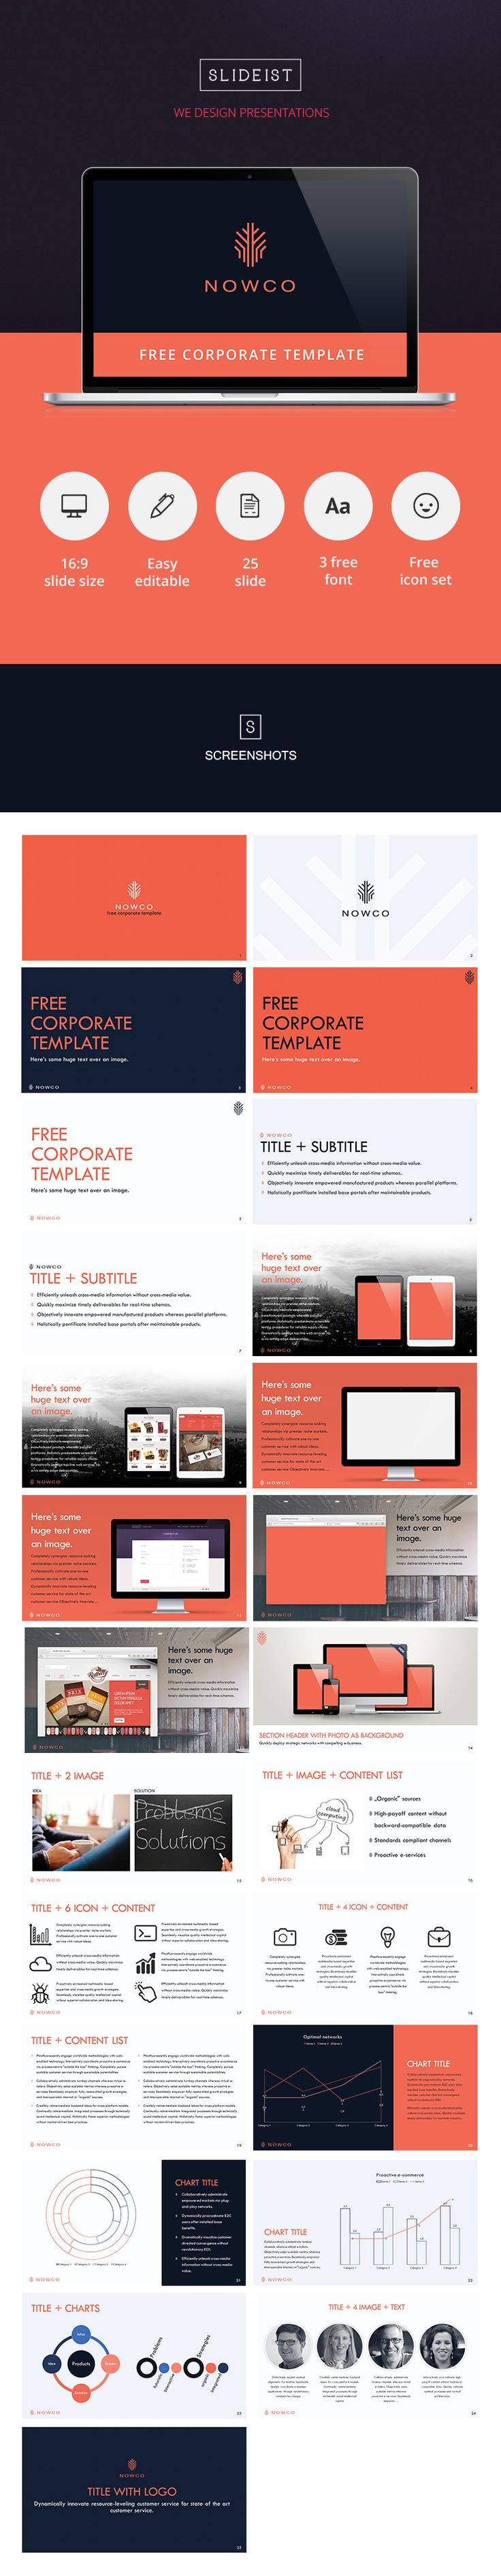 free powerpoint presentation template free download ppt template